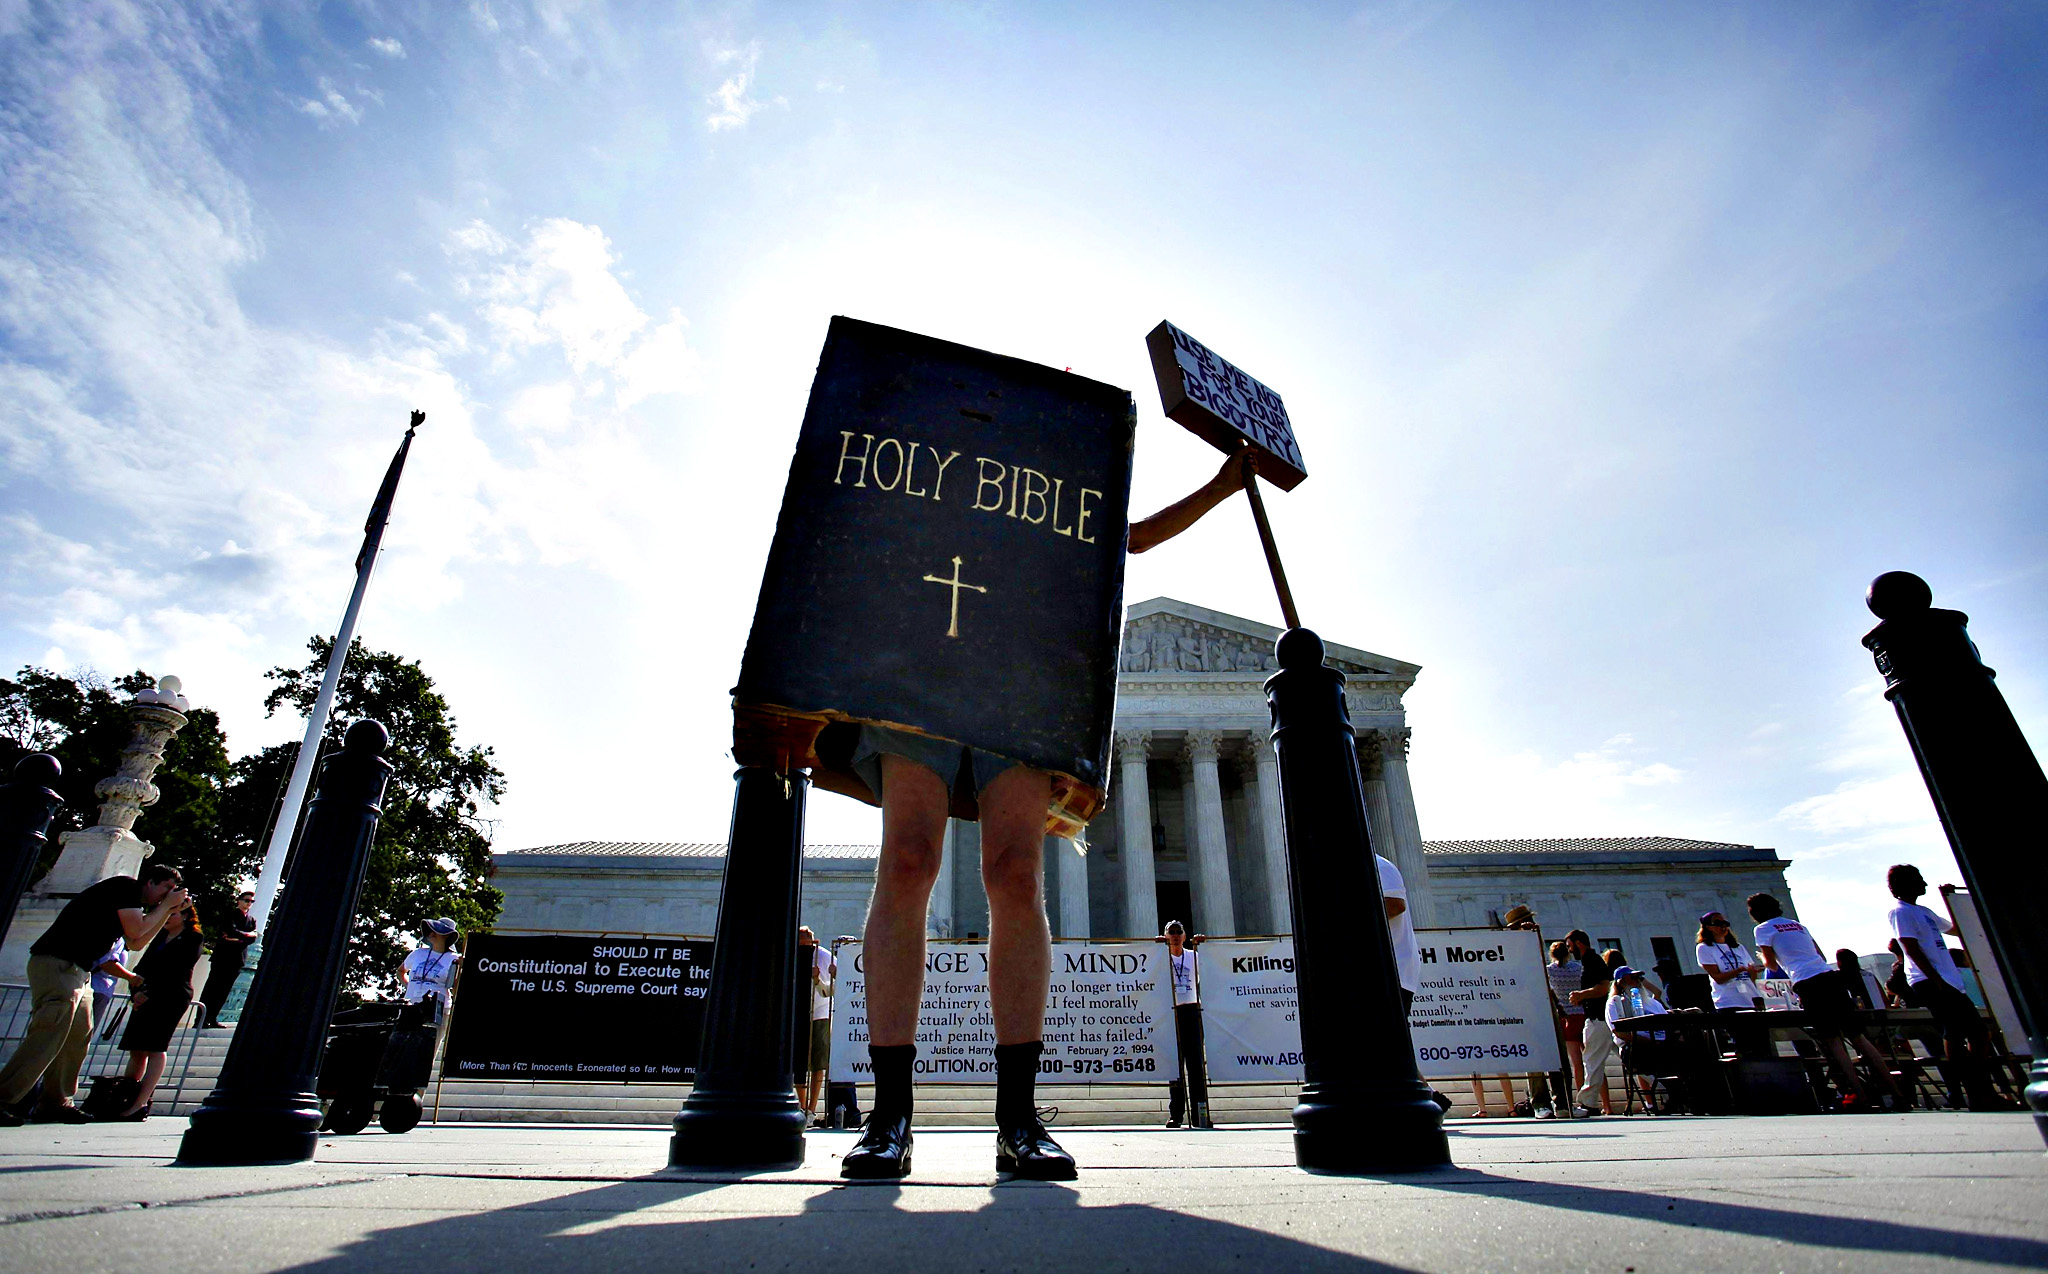 A protester dressed as a copy of the Bible joins groups demonstrating outside the U.S. Supreme Court in Washington June 30, 2014. The U.S. Supreme Court on Monday ruled that business owners can object on religious grounds to a provision of U.S. President Barack Obama's healthcare law that requires closely held companies to provide health insurance that covers birth control.